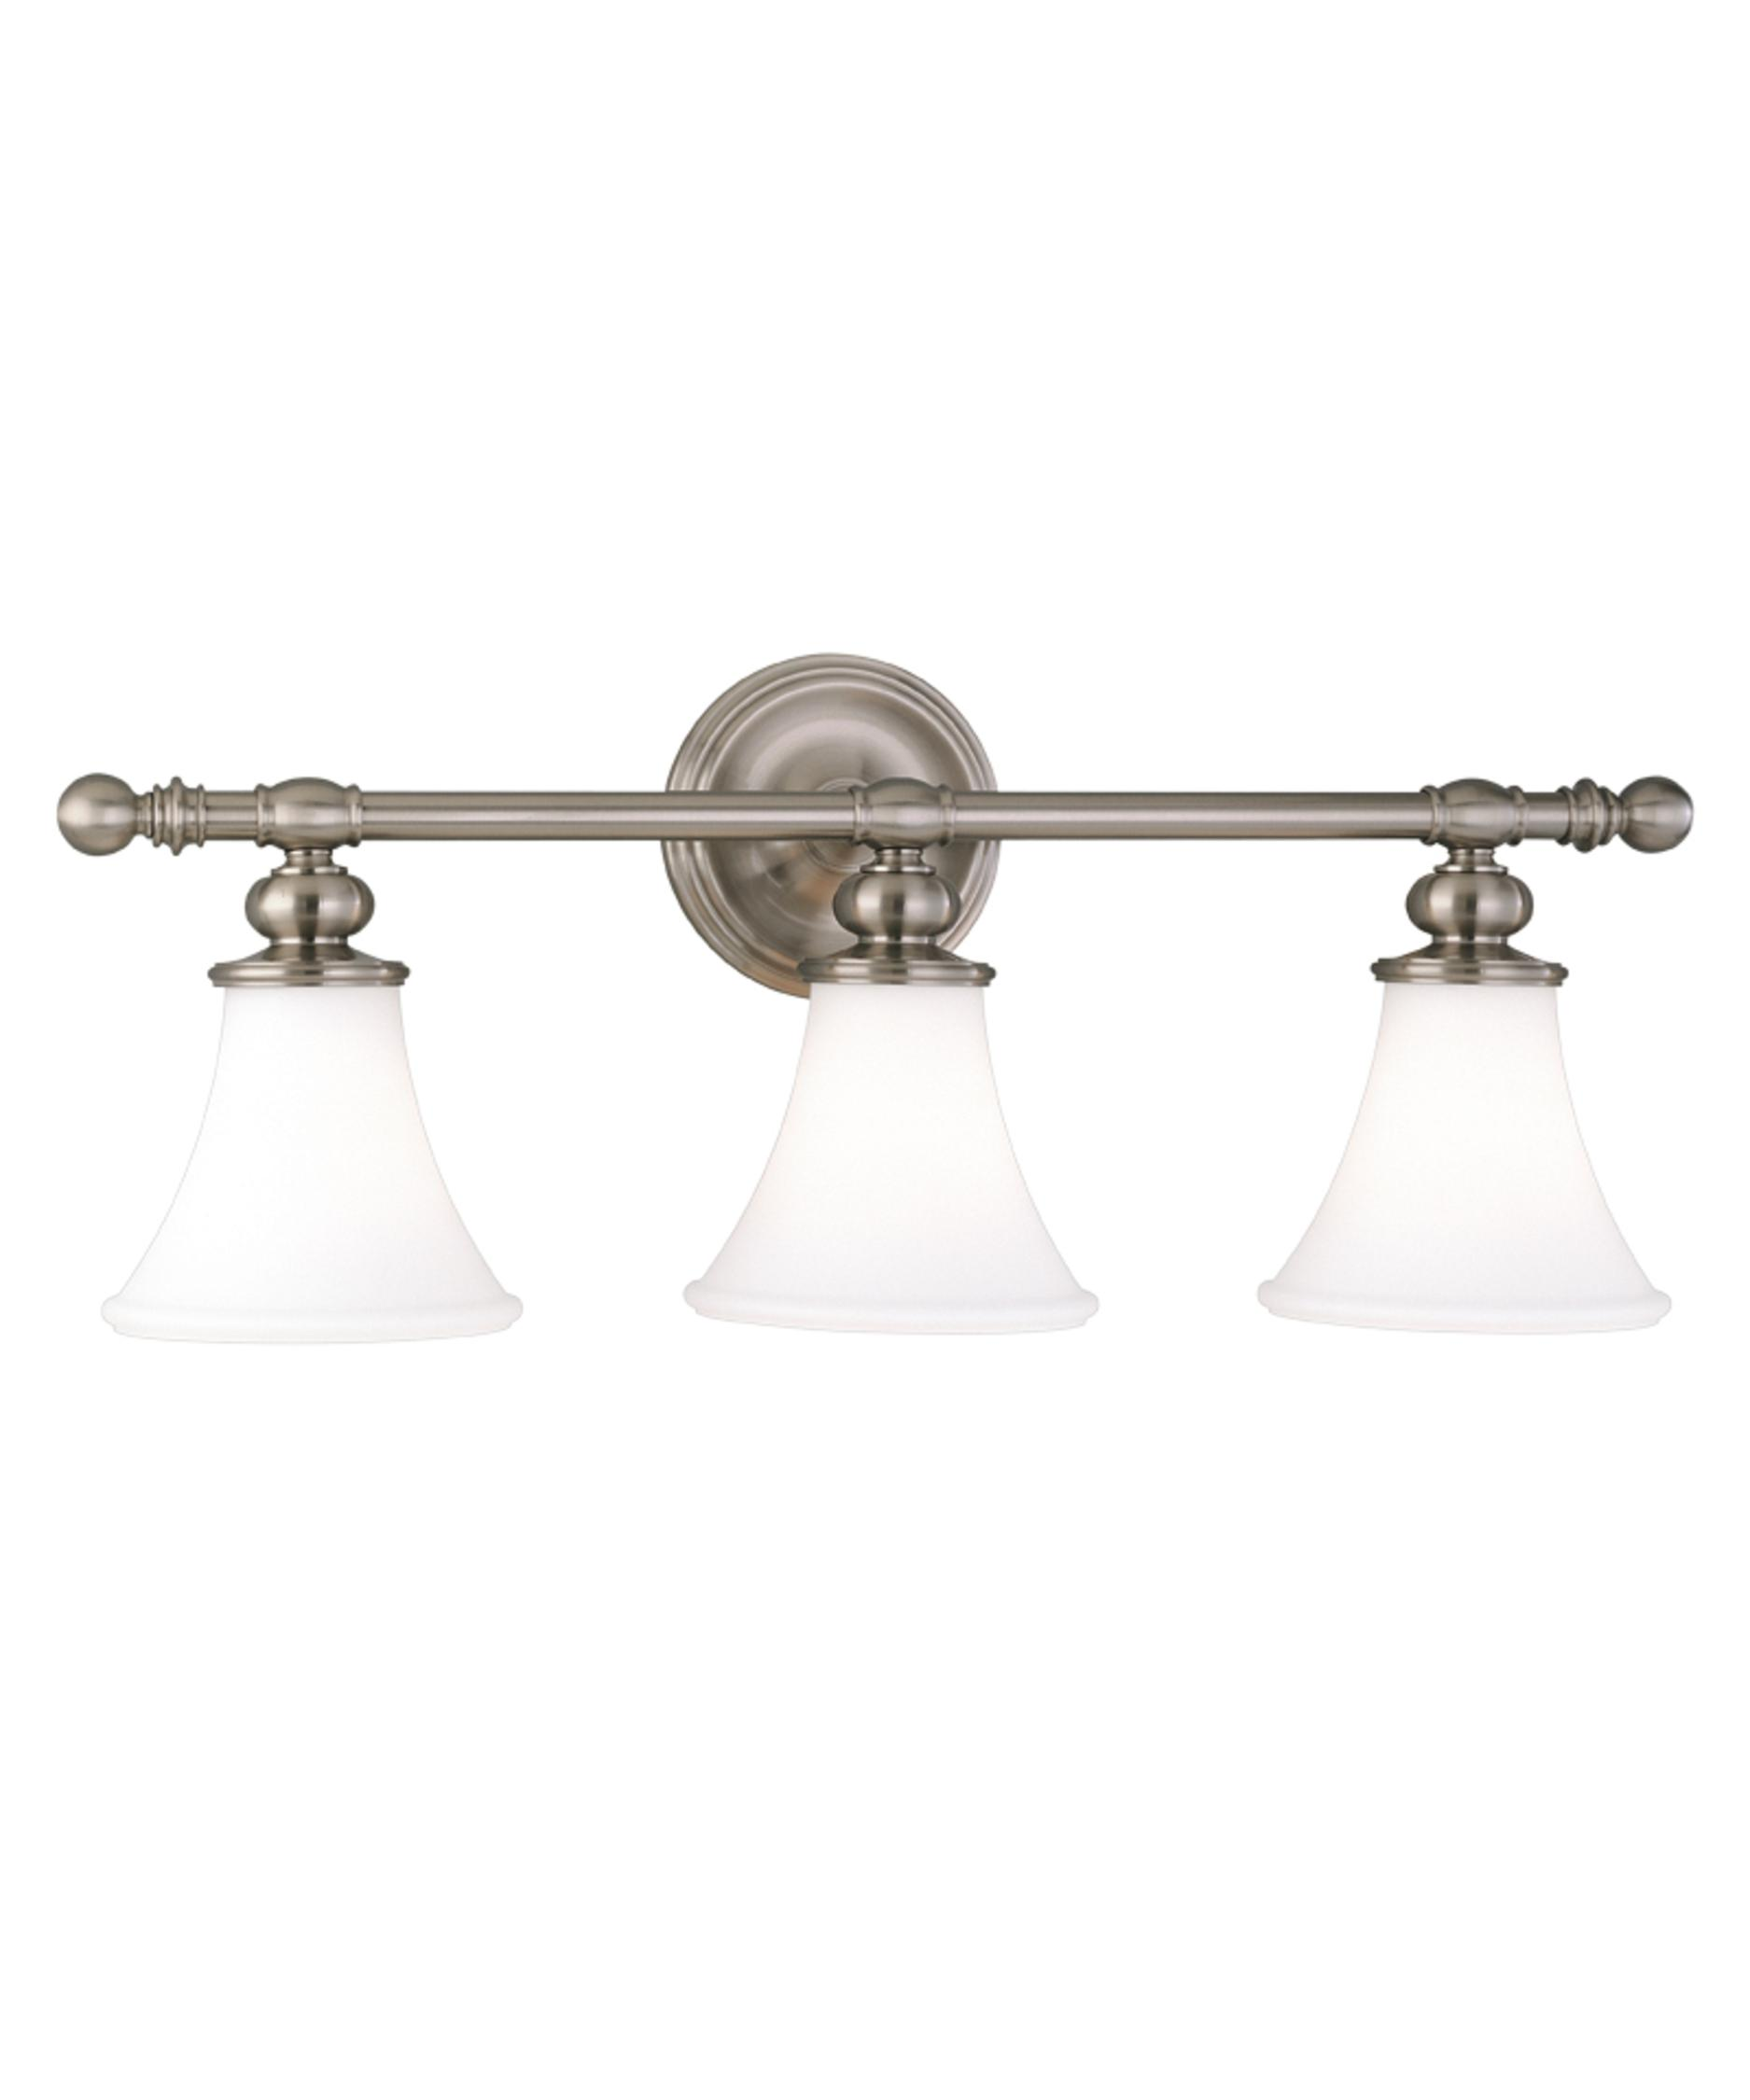 Bathroom Vanity Lights Polished Nickel hudson valley 4503 weston 25 inch wide bath vanity light | capitol